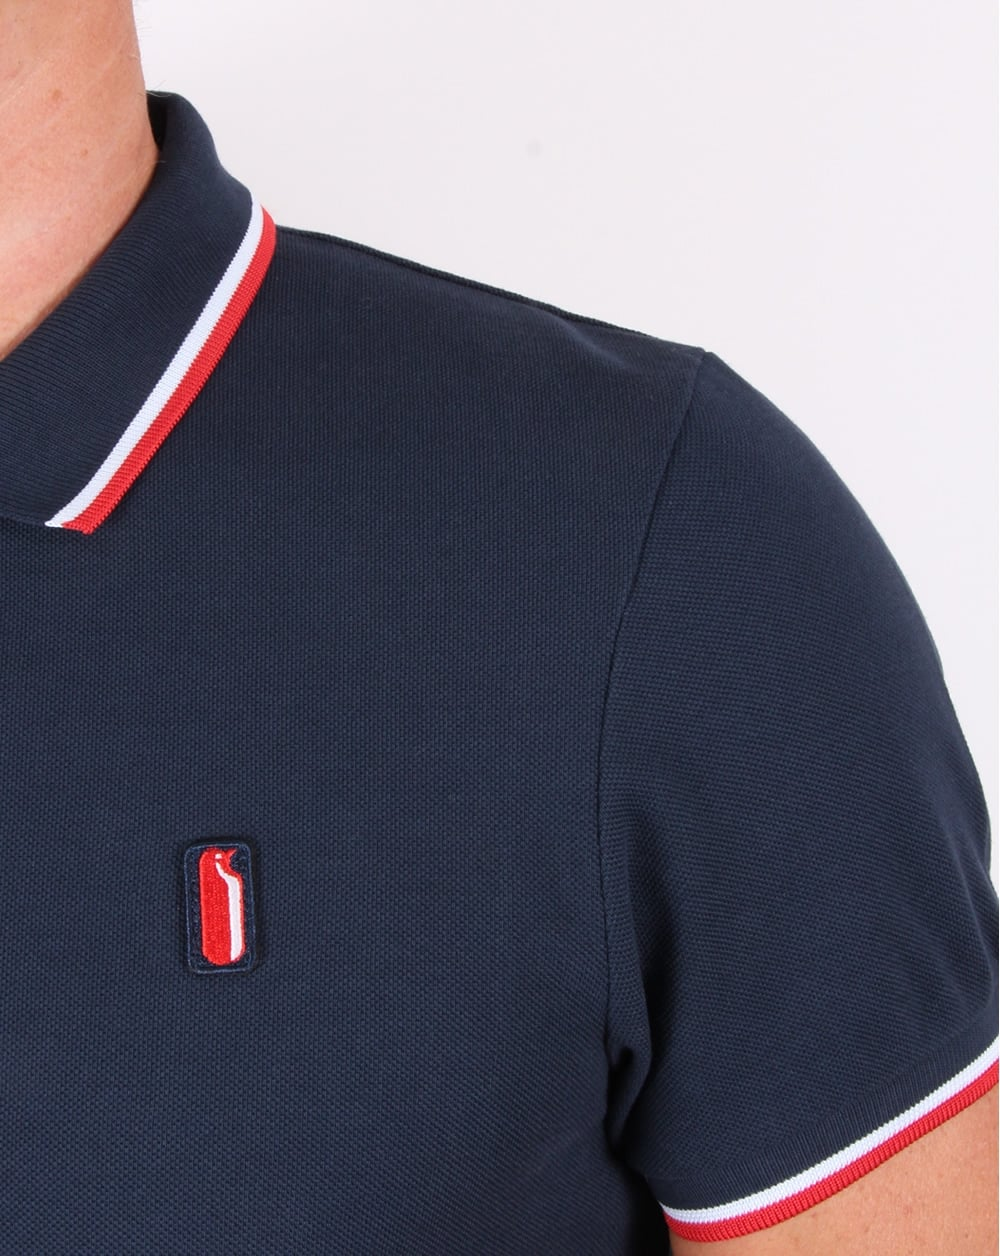 d8f4caf69 Ellesse Penguin Avalanche Tipped Polo Shirt Navy, Men's, Top